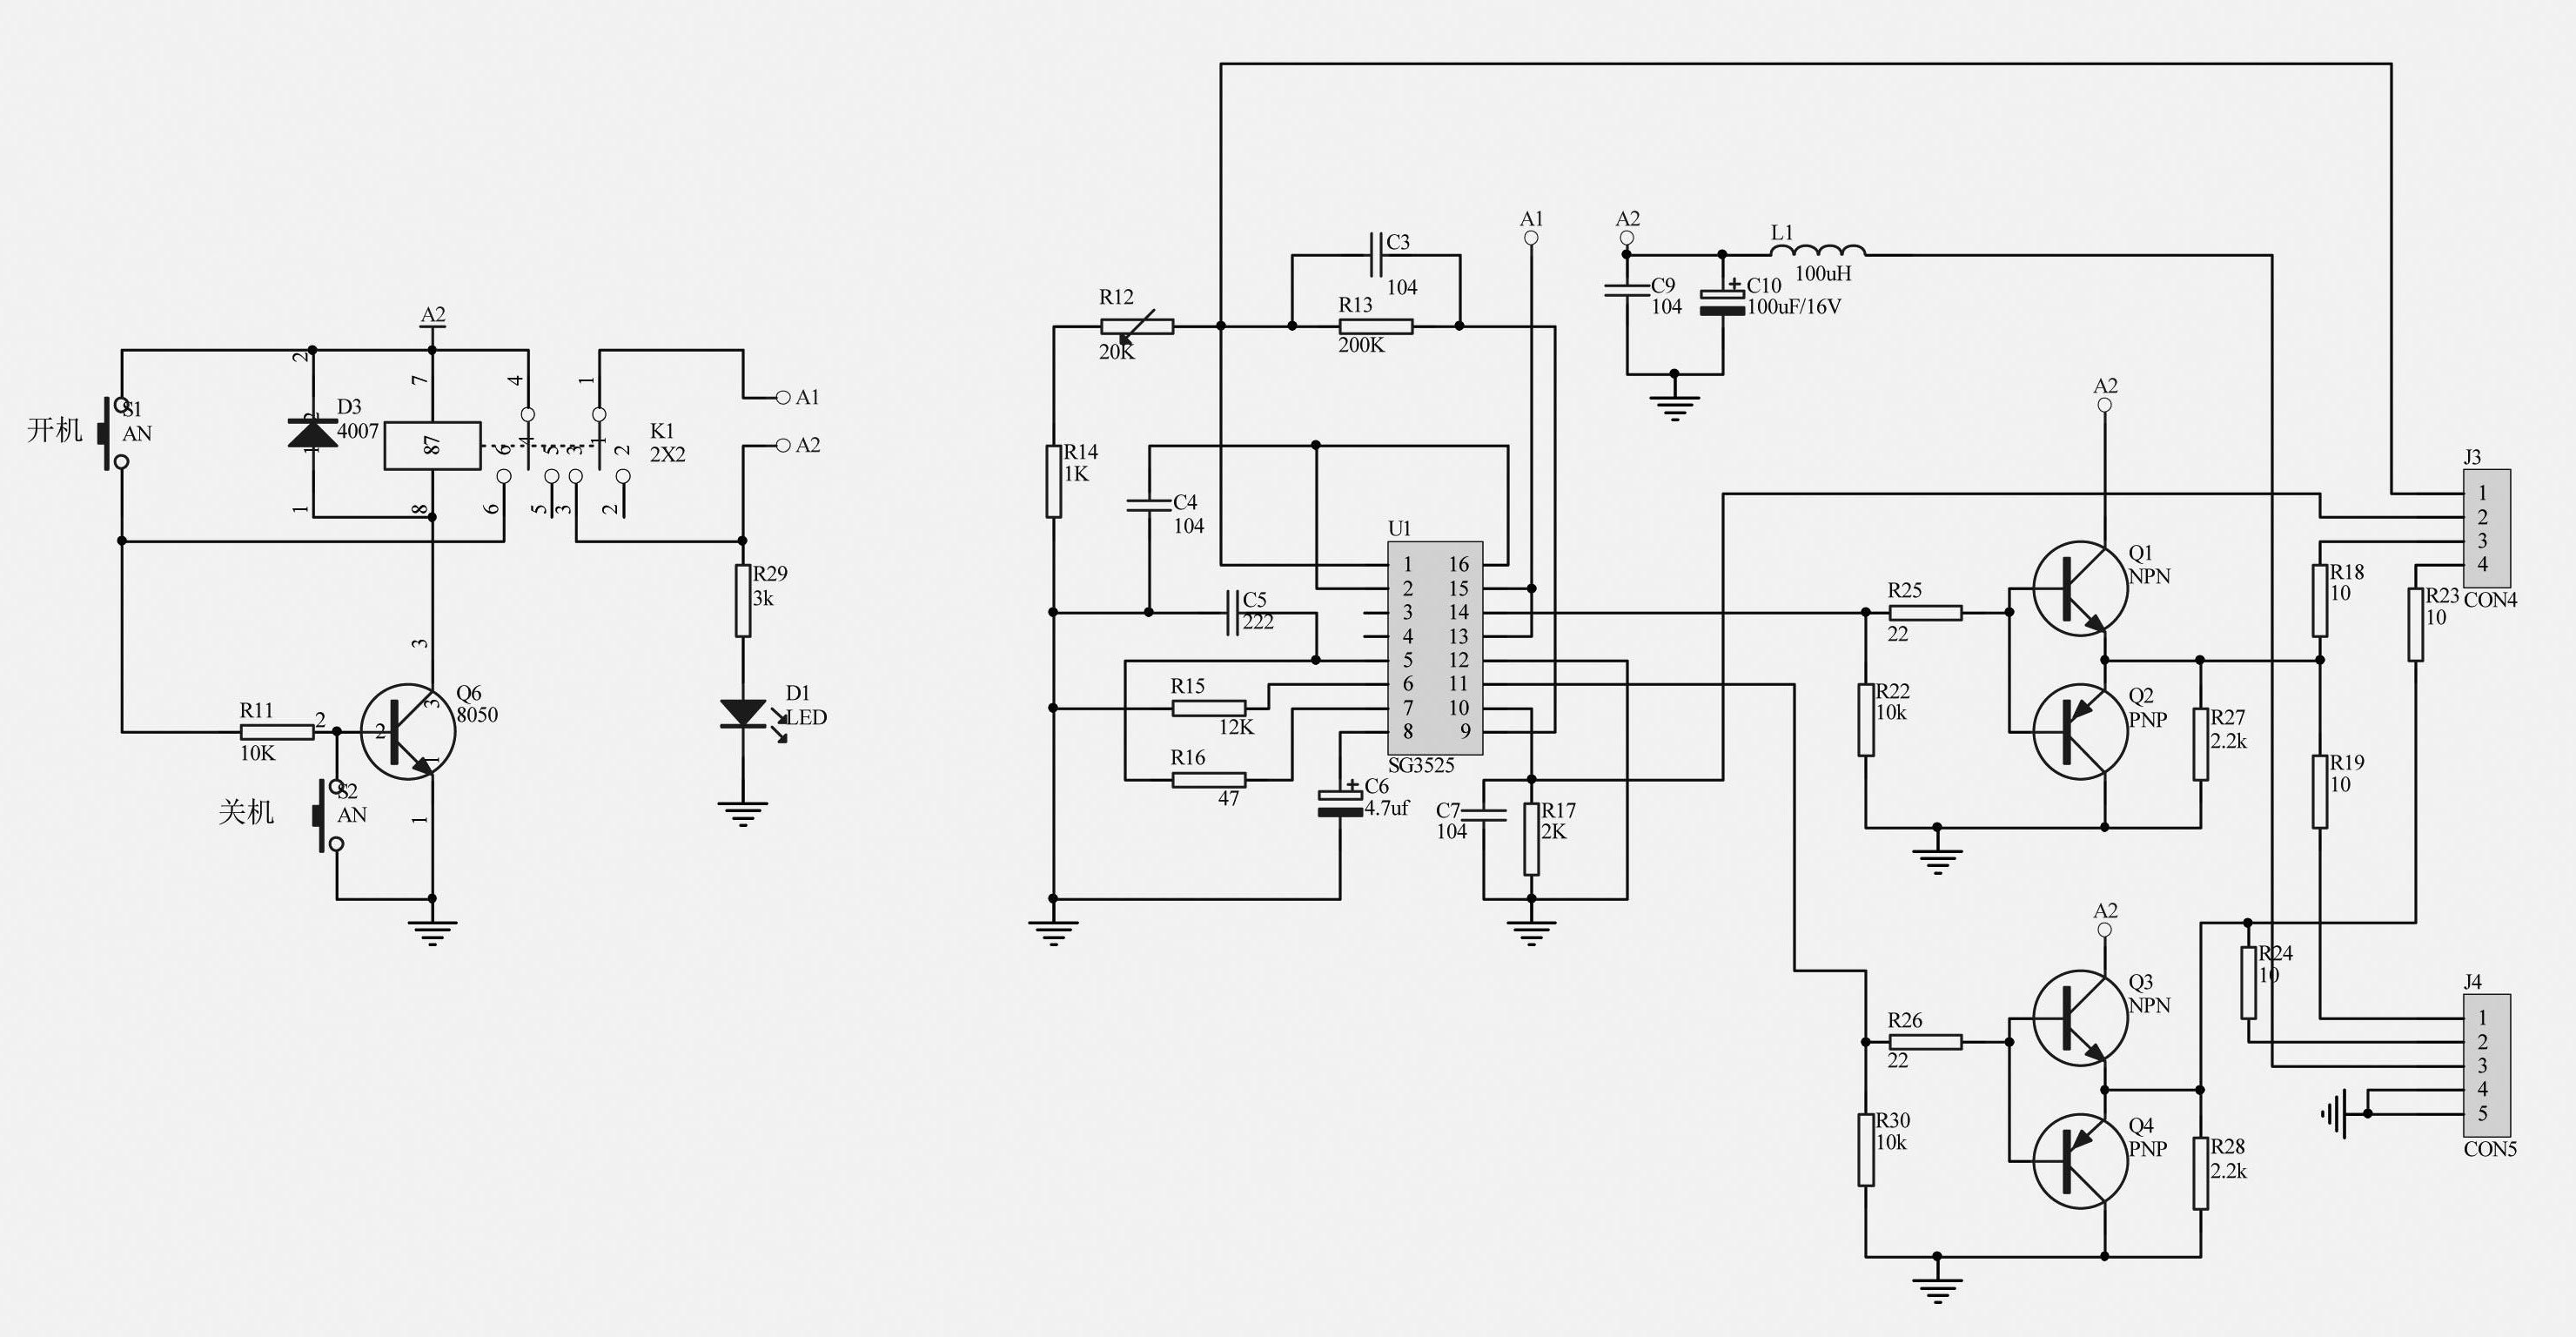 Inverter Circuit Diagrams 1000w Pdf - Wiring Diagram Structure